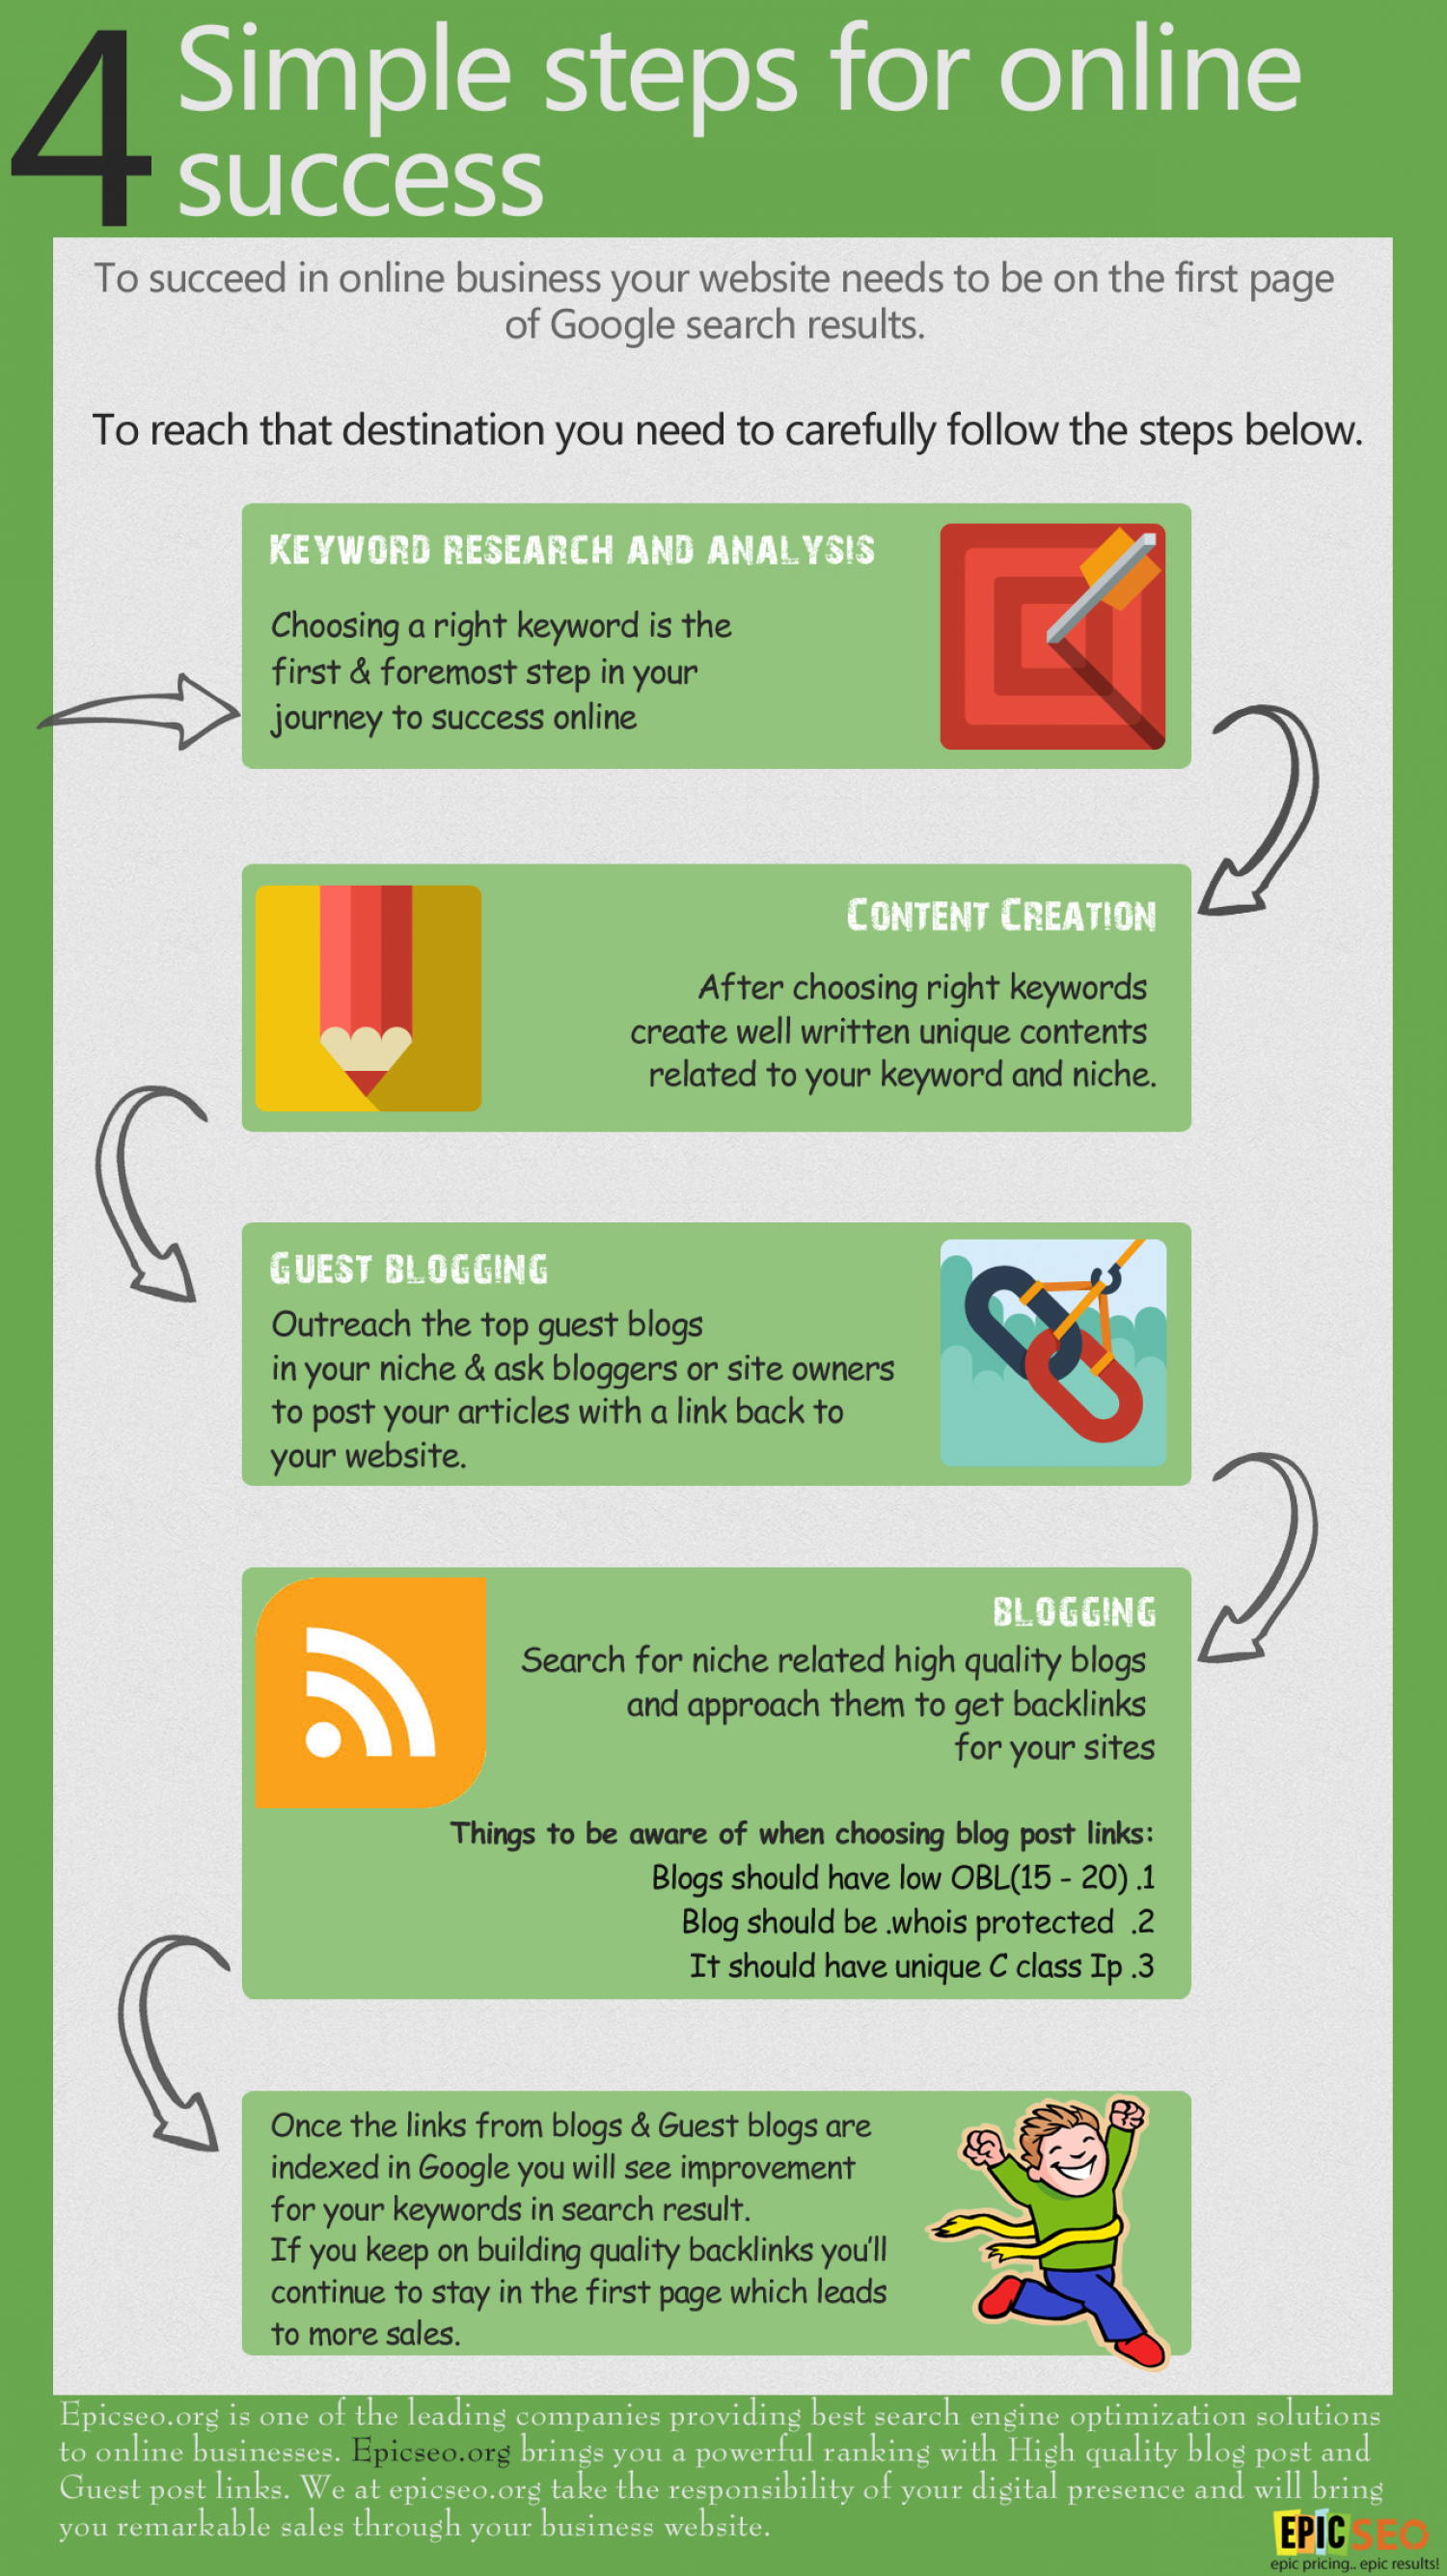 4 Simple Steps for Online Success Infographic